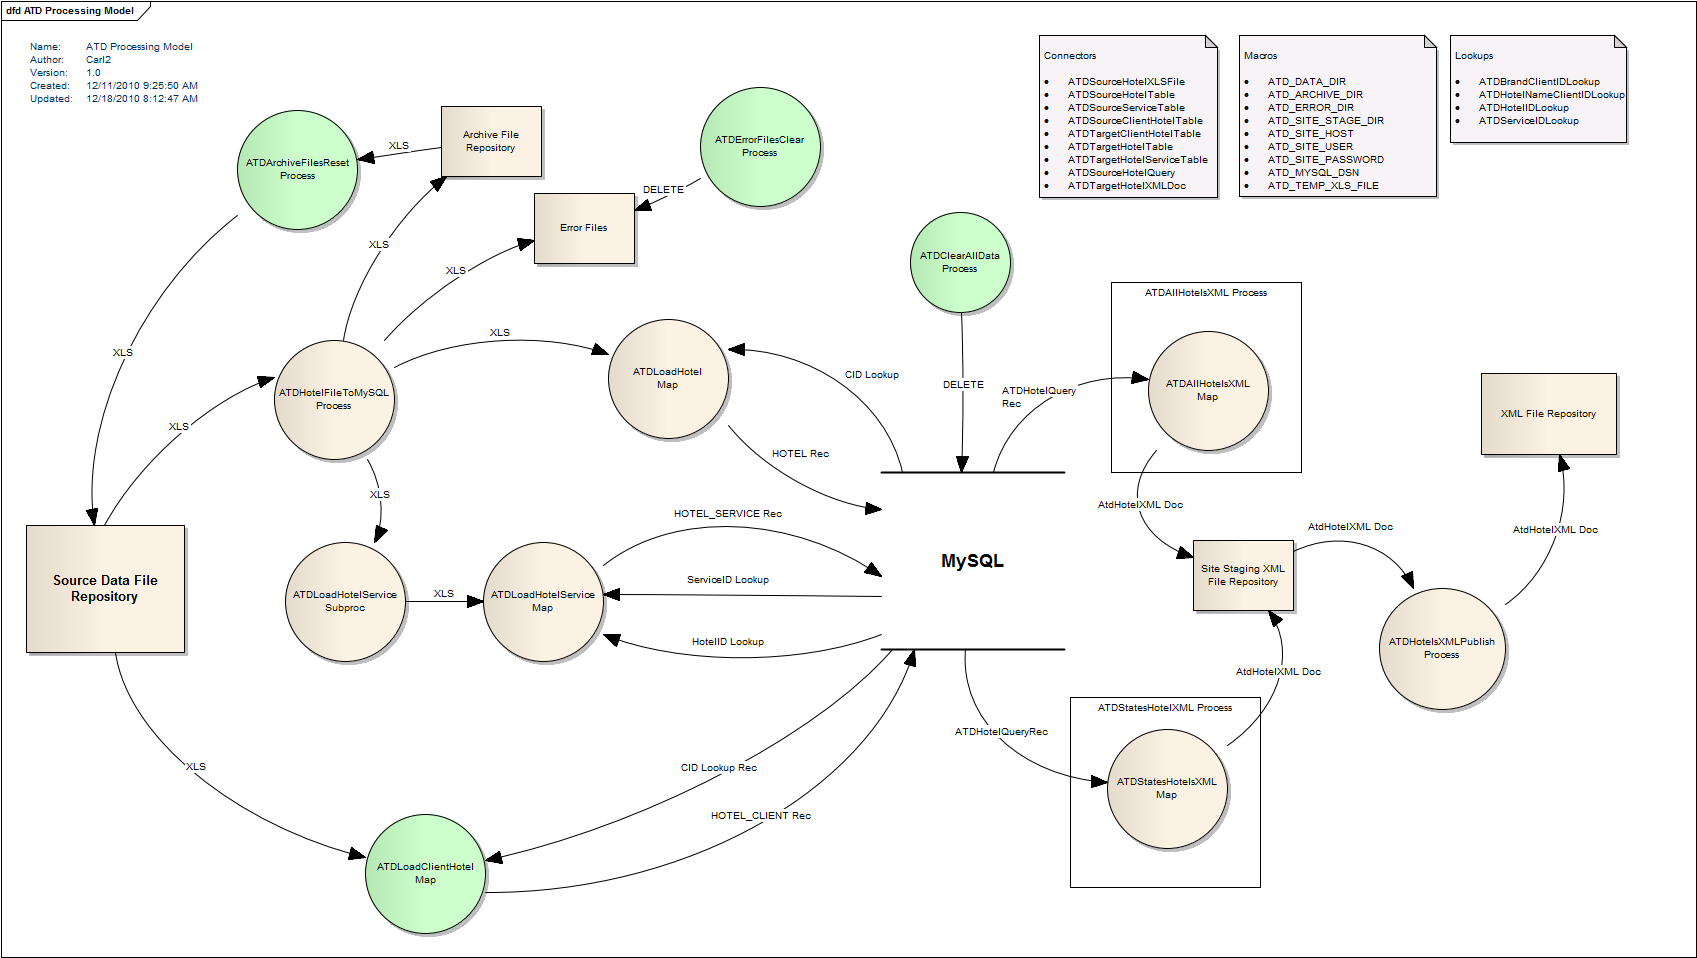 Bekwam blog atd processing model phase 1 dfd of hotel daas example ccuart Image collections